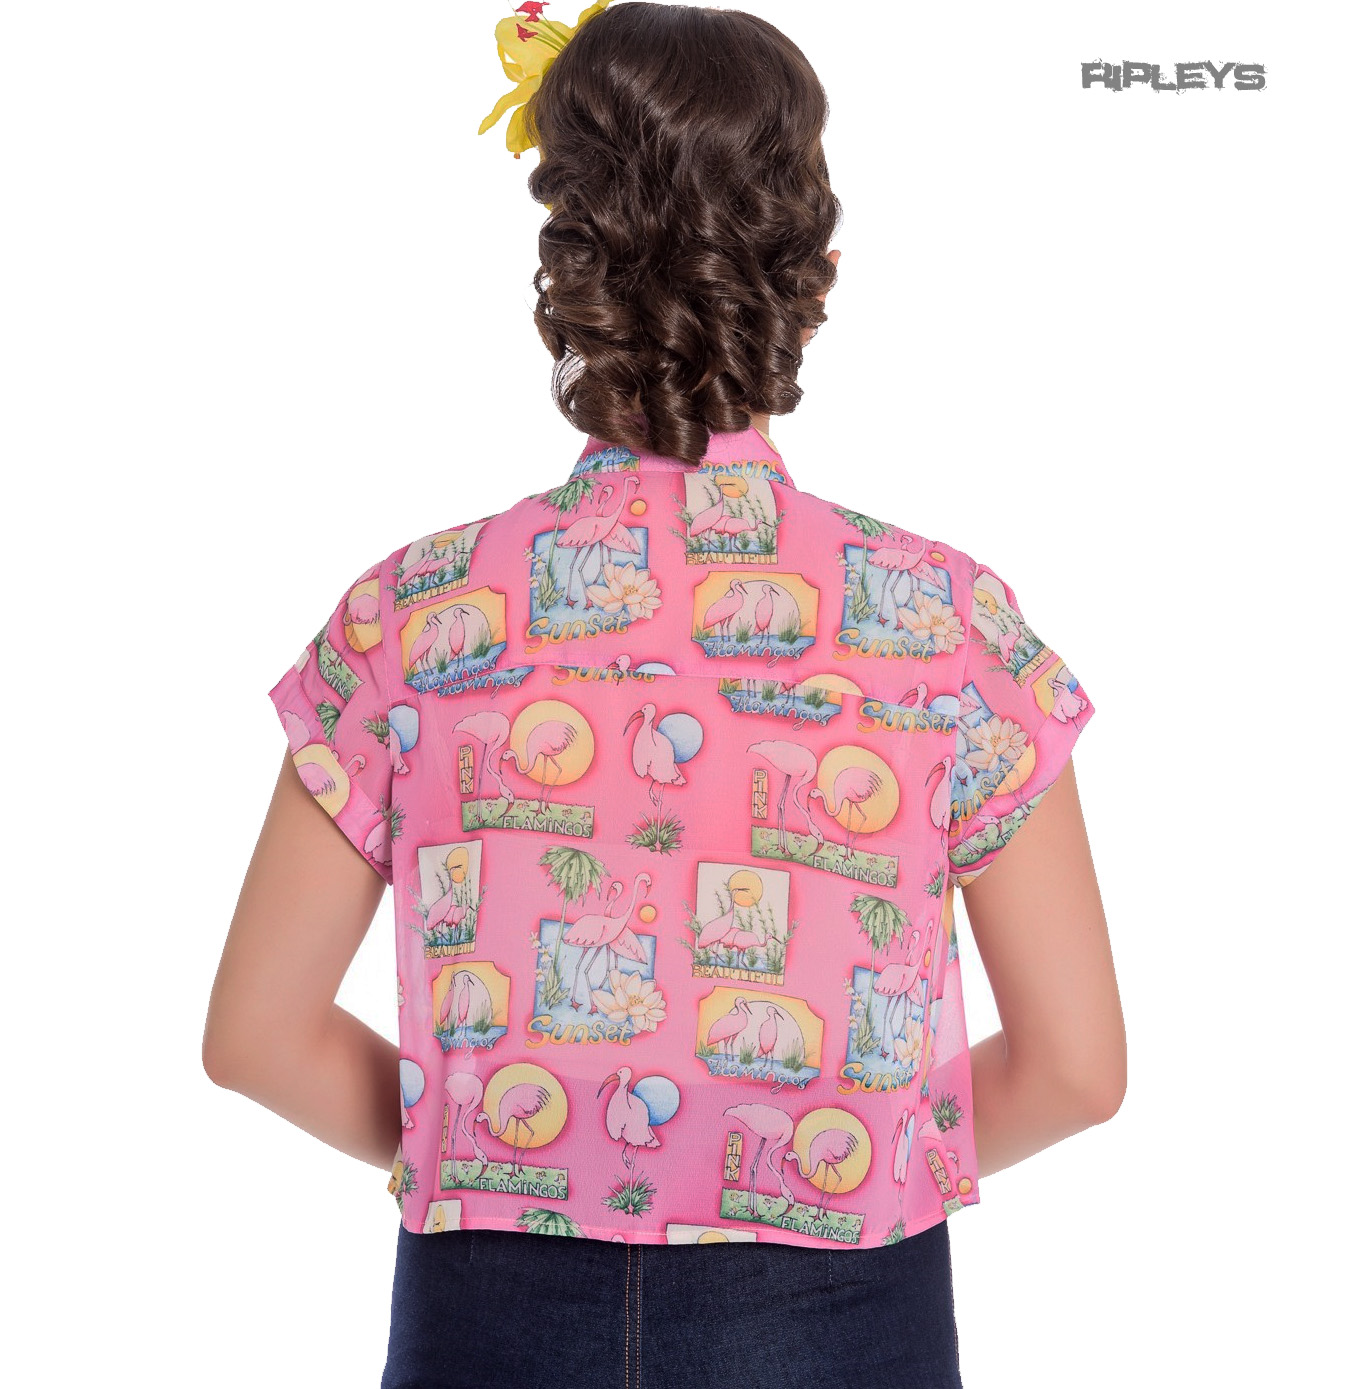 thumbnail 7 - Hell Bunny 50s Retro Top Pink Flamingo MAXINE Cropped Blouse Shirt All Sizes